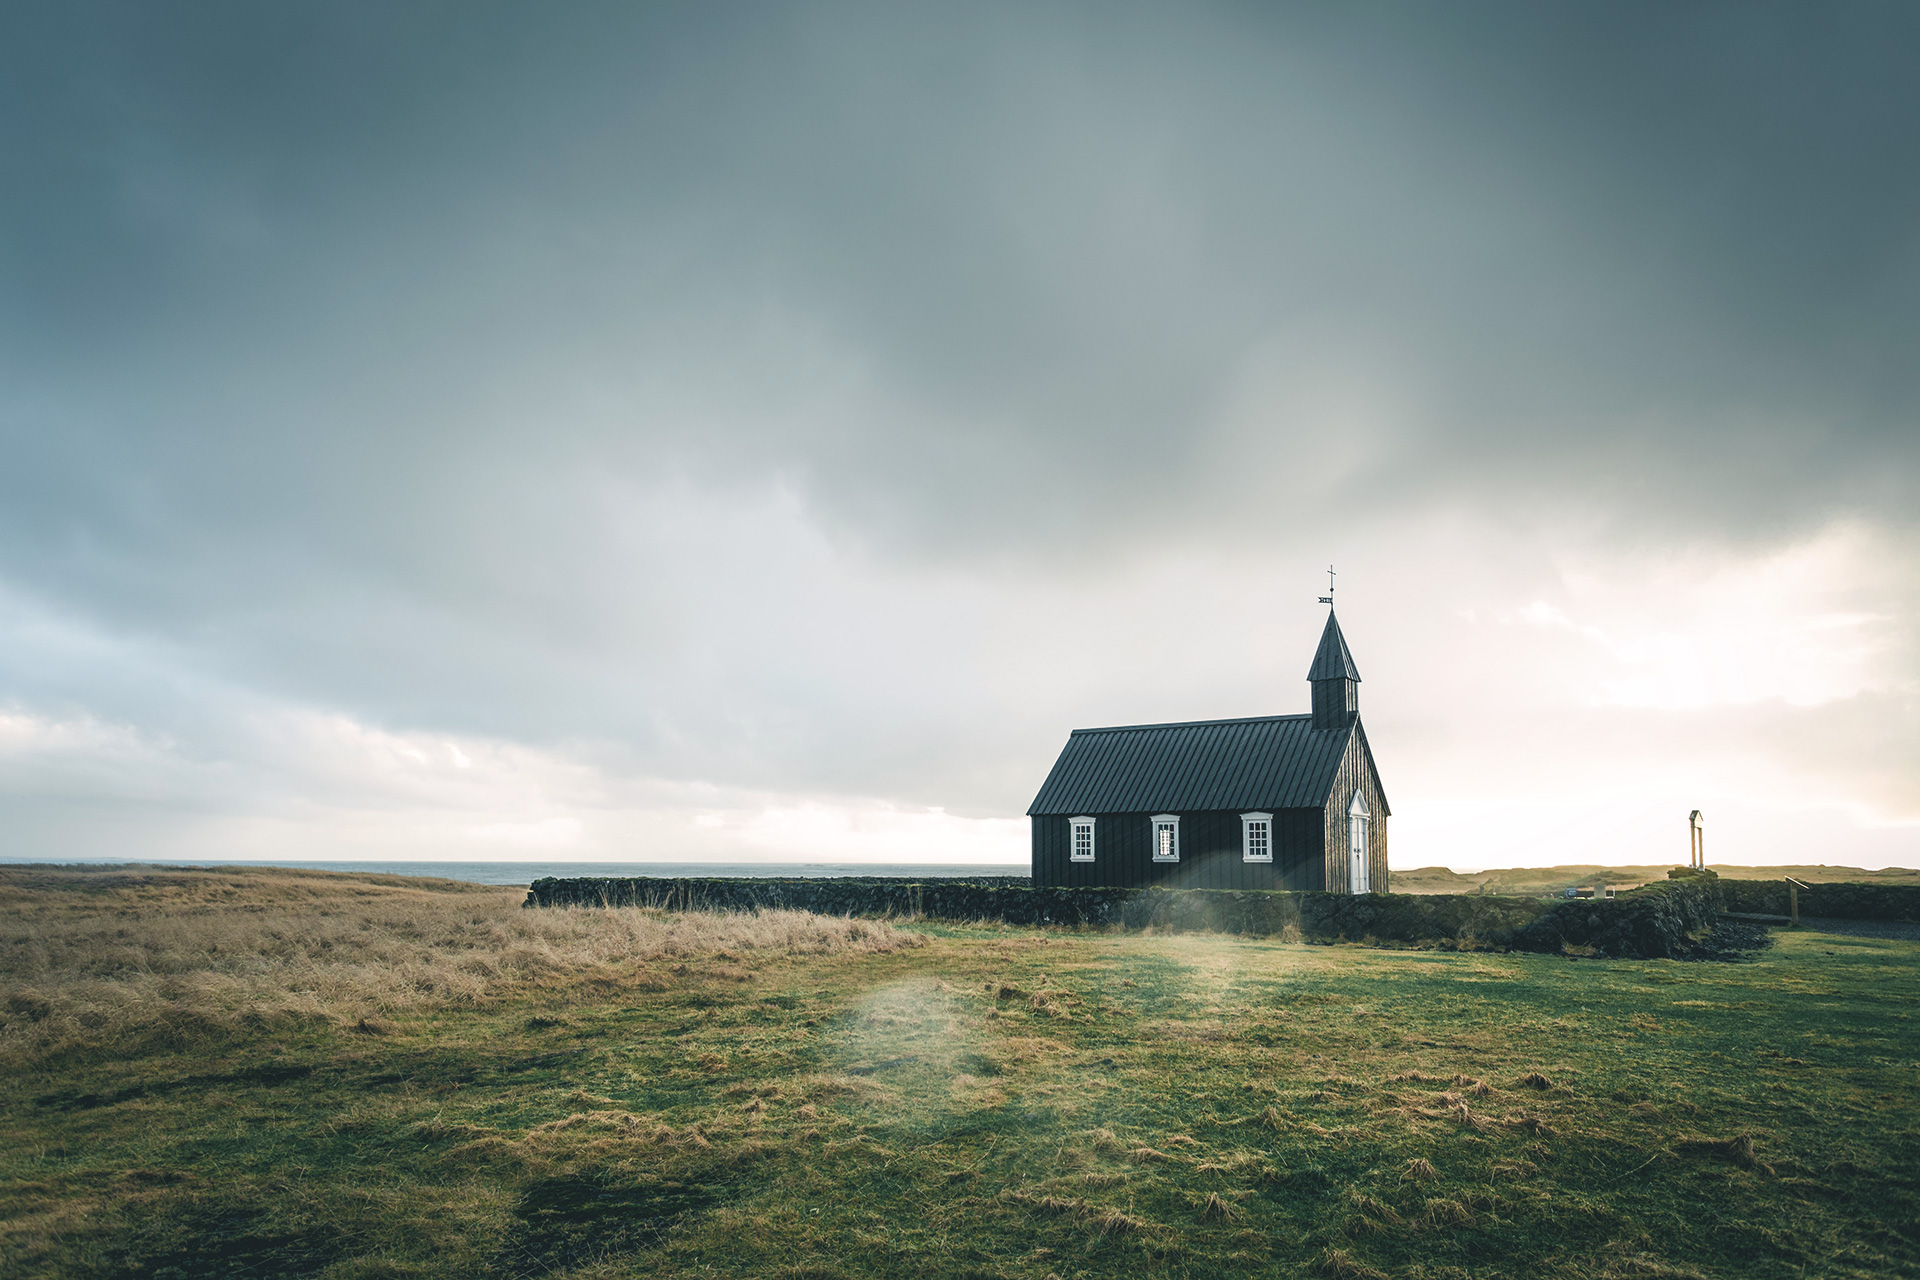 When Bigger Isn't Better: The Real Goal of Church Revitalization